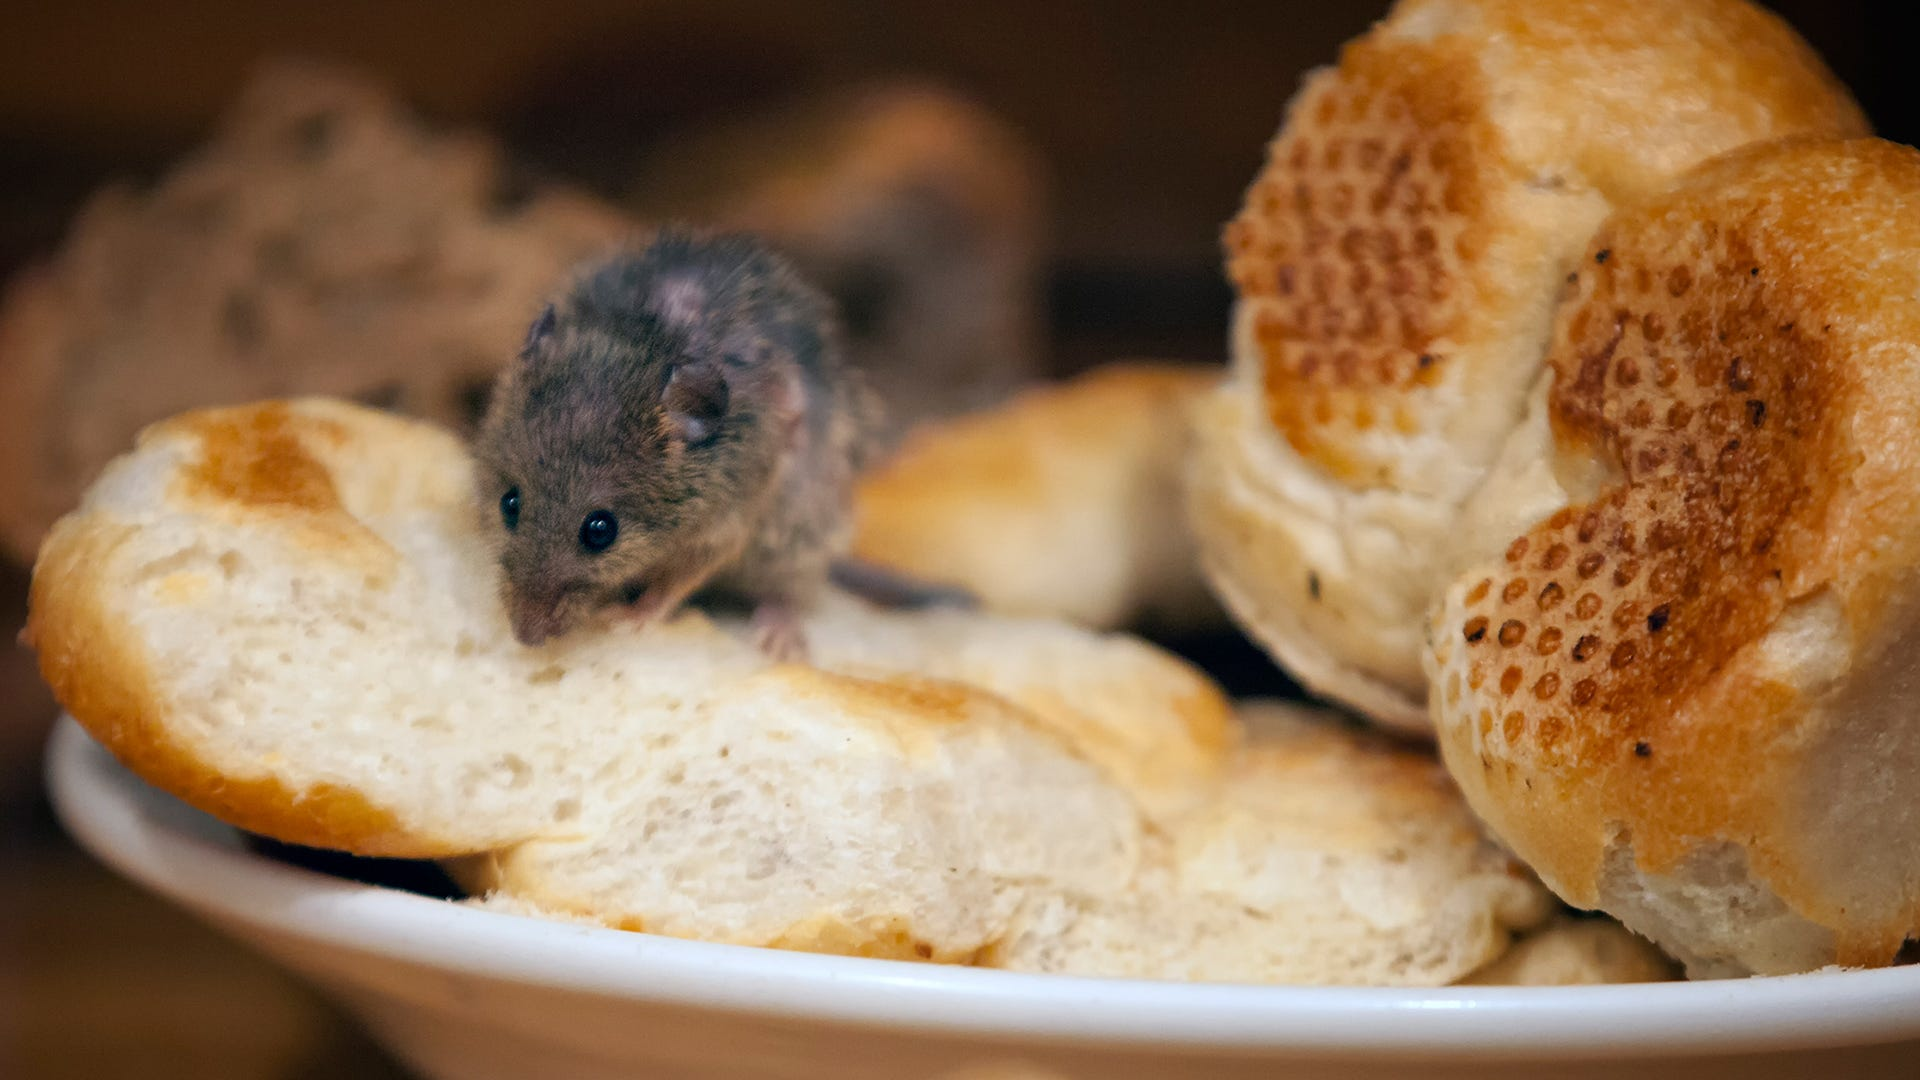 What Food Sources Attract Rodents?